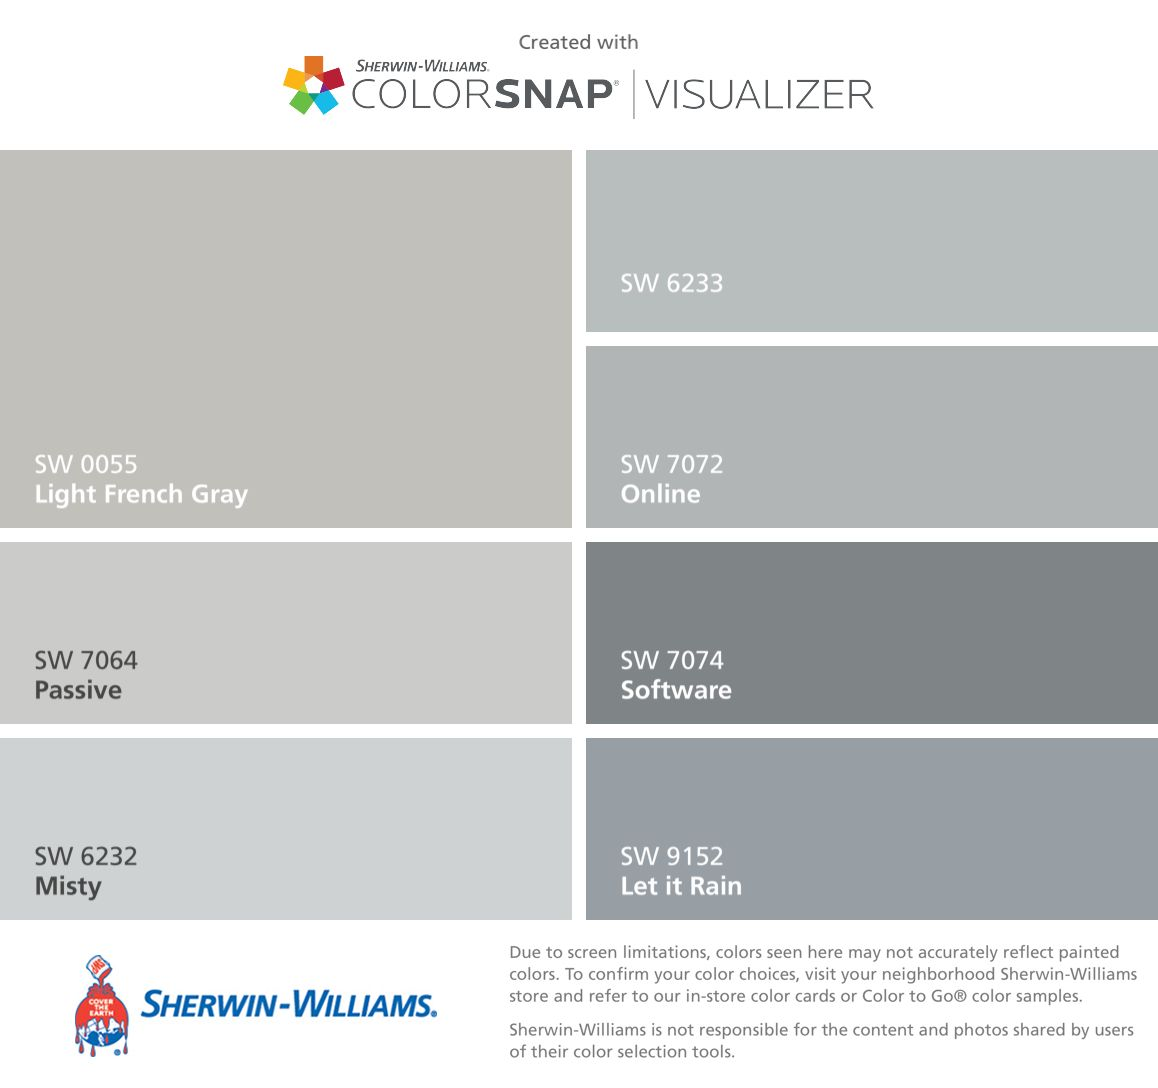 Actual Colors I Will Use To Paint The House Light French Gray Sw